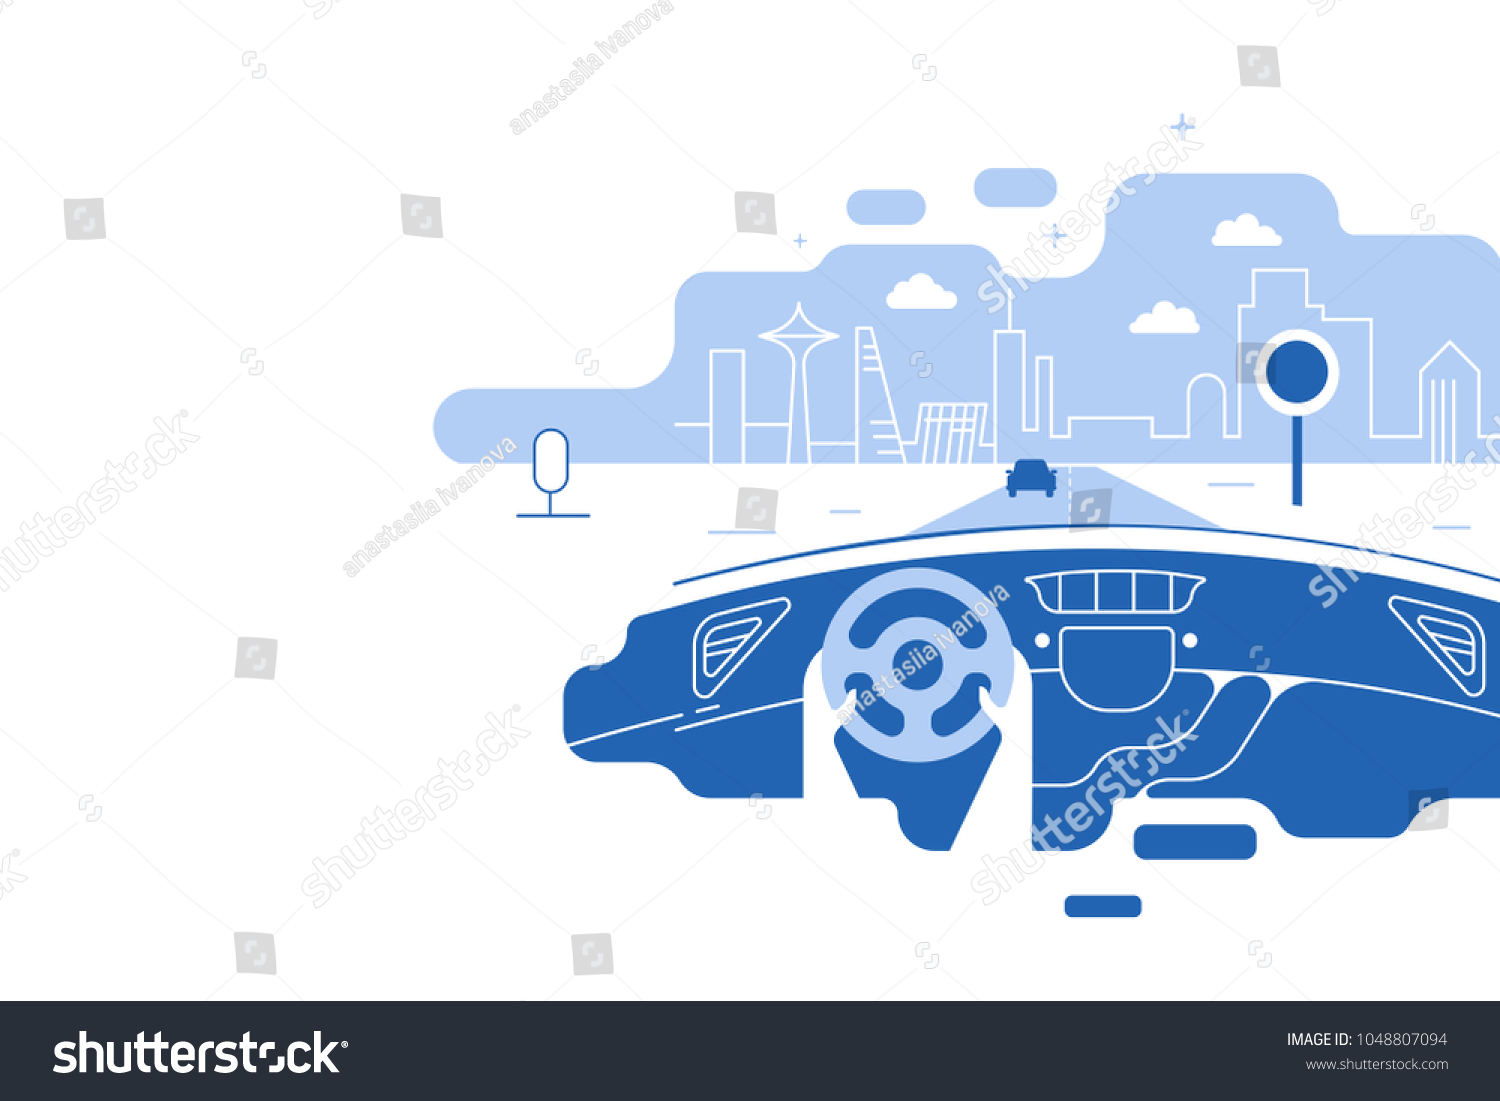 Dashboard car and driver.Hands driving a car on the highway. Drive safely warning billboard.Flat vector illustration. Car on asphalt road with speed limit on highway car interior. background.